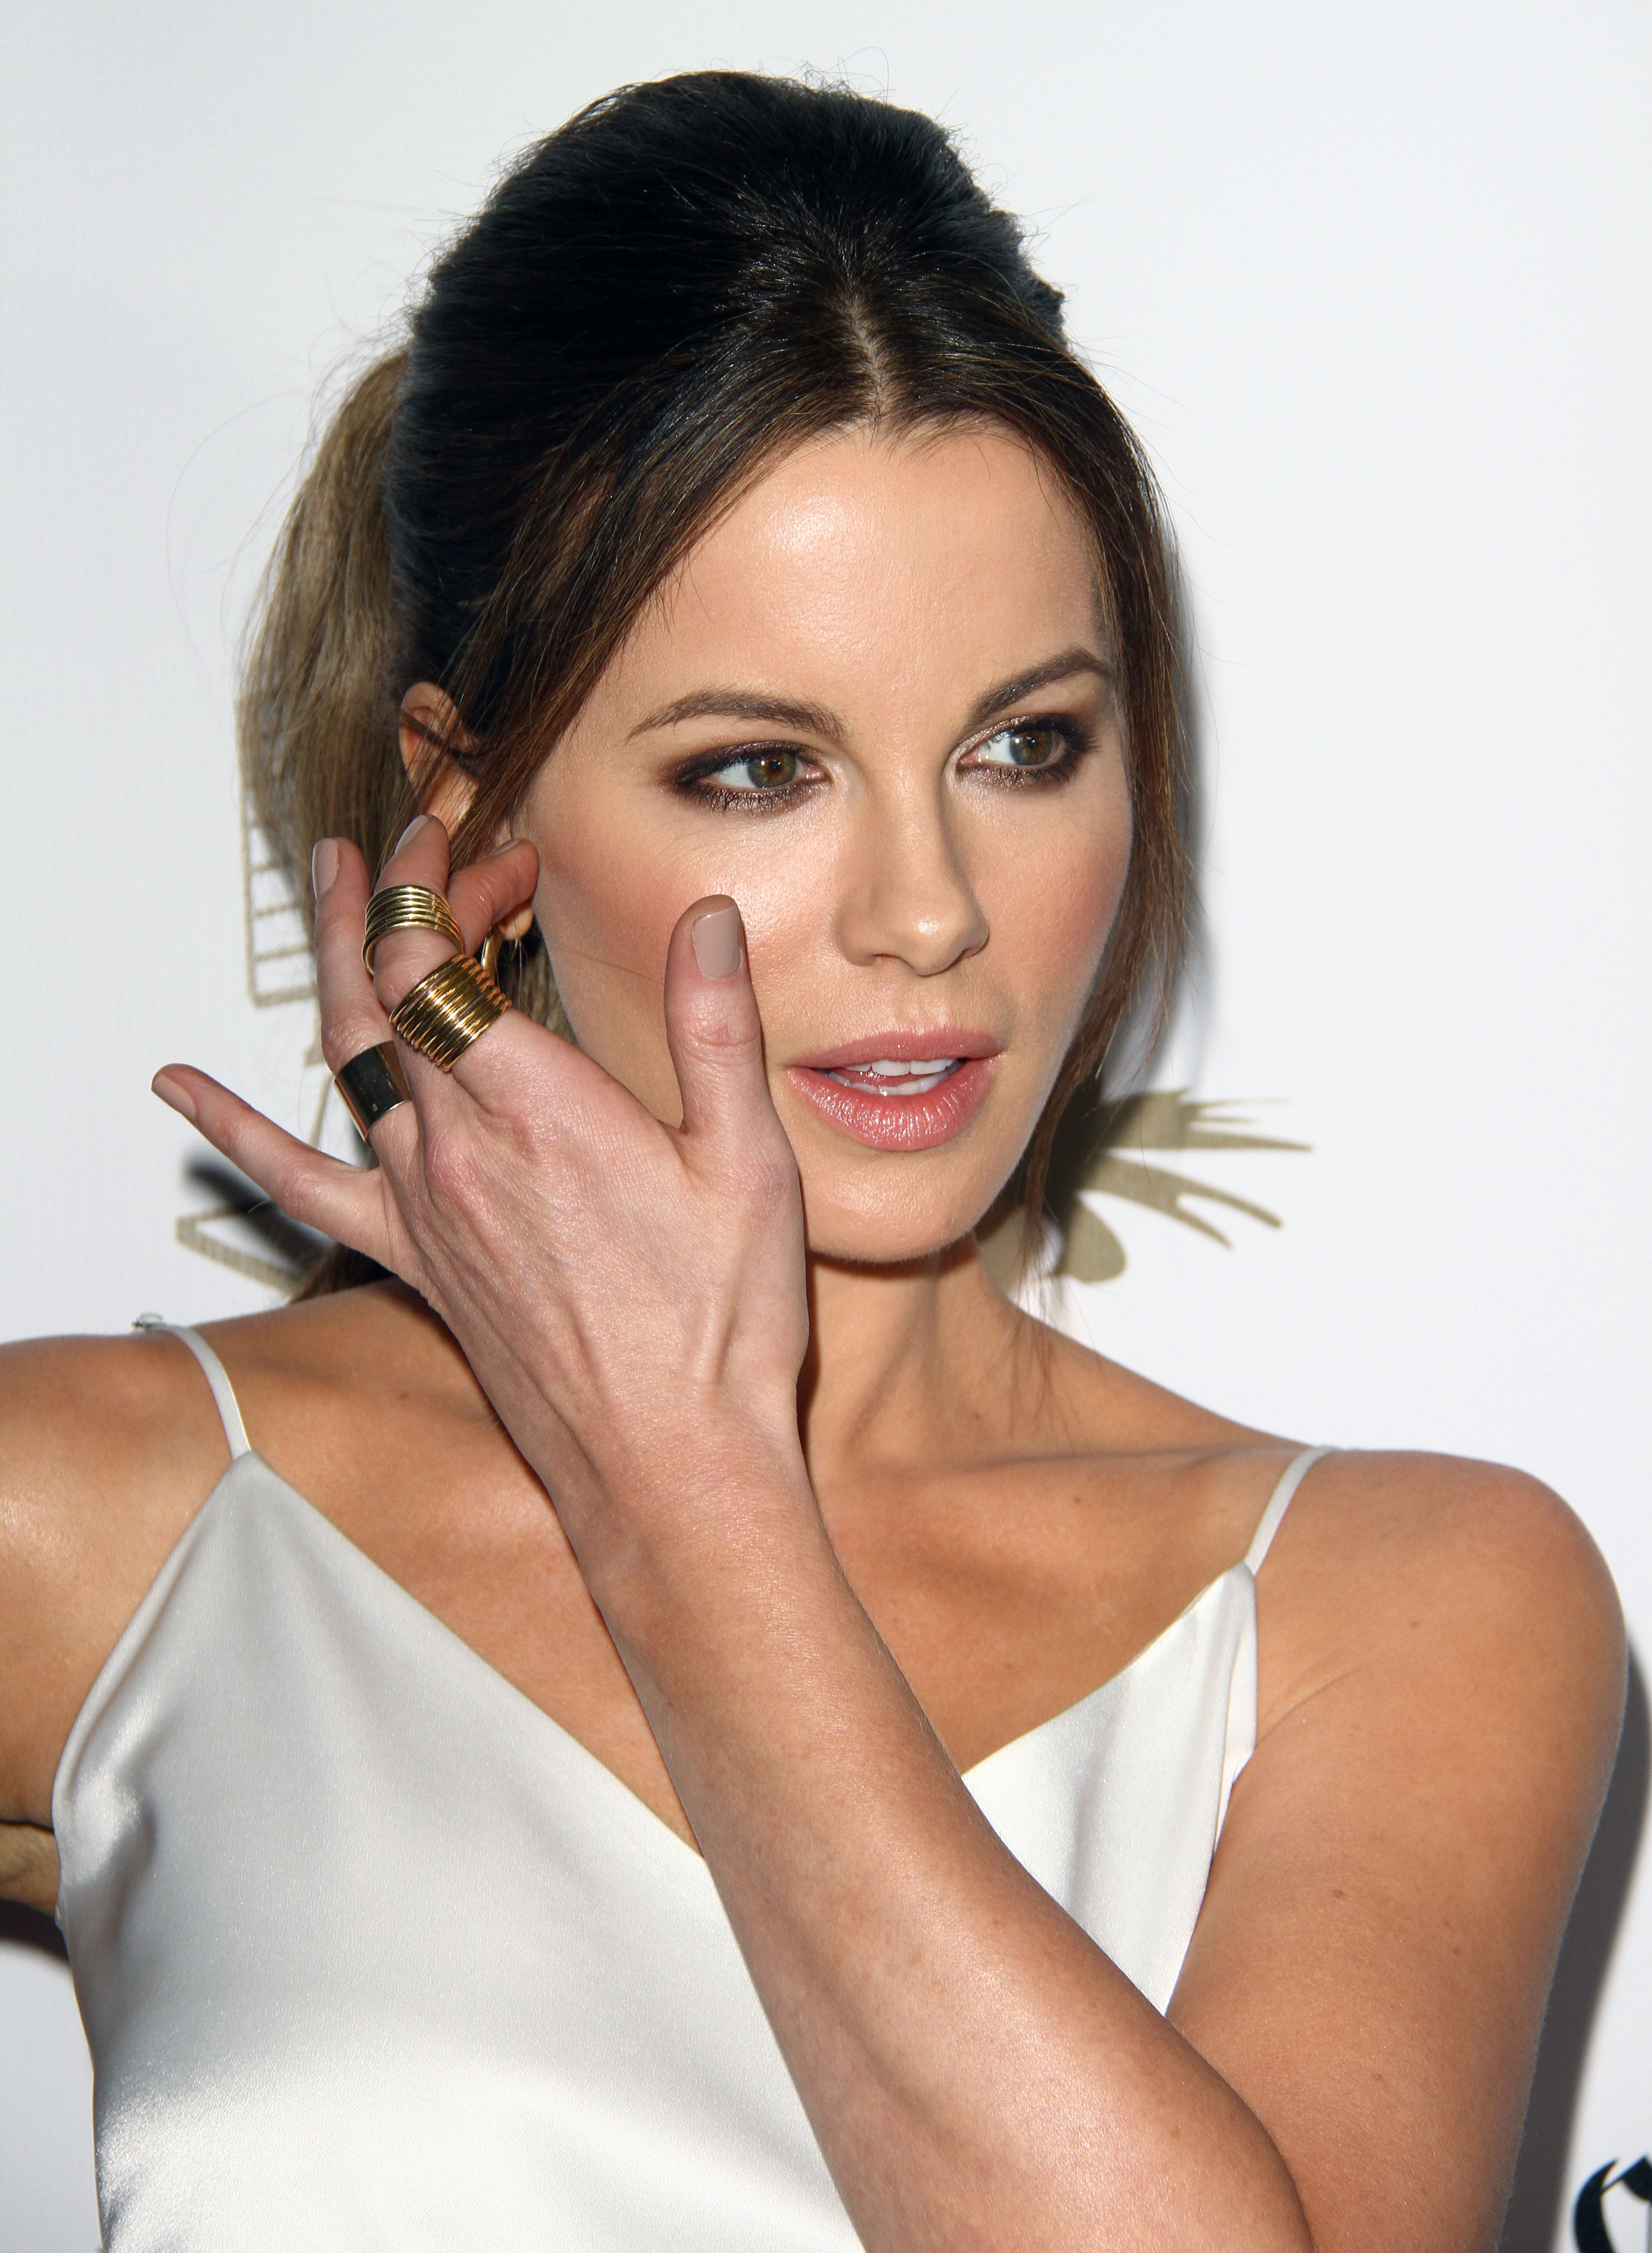 Kate Beckinsale 17th Newport Beach Film Festival 2 - Satiny Kate Beckinsale